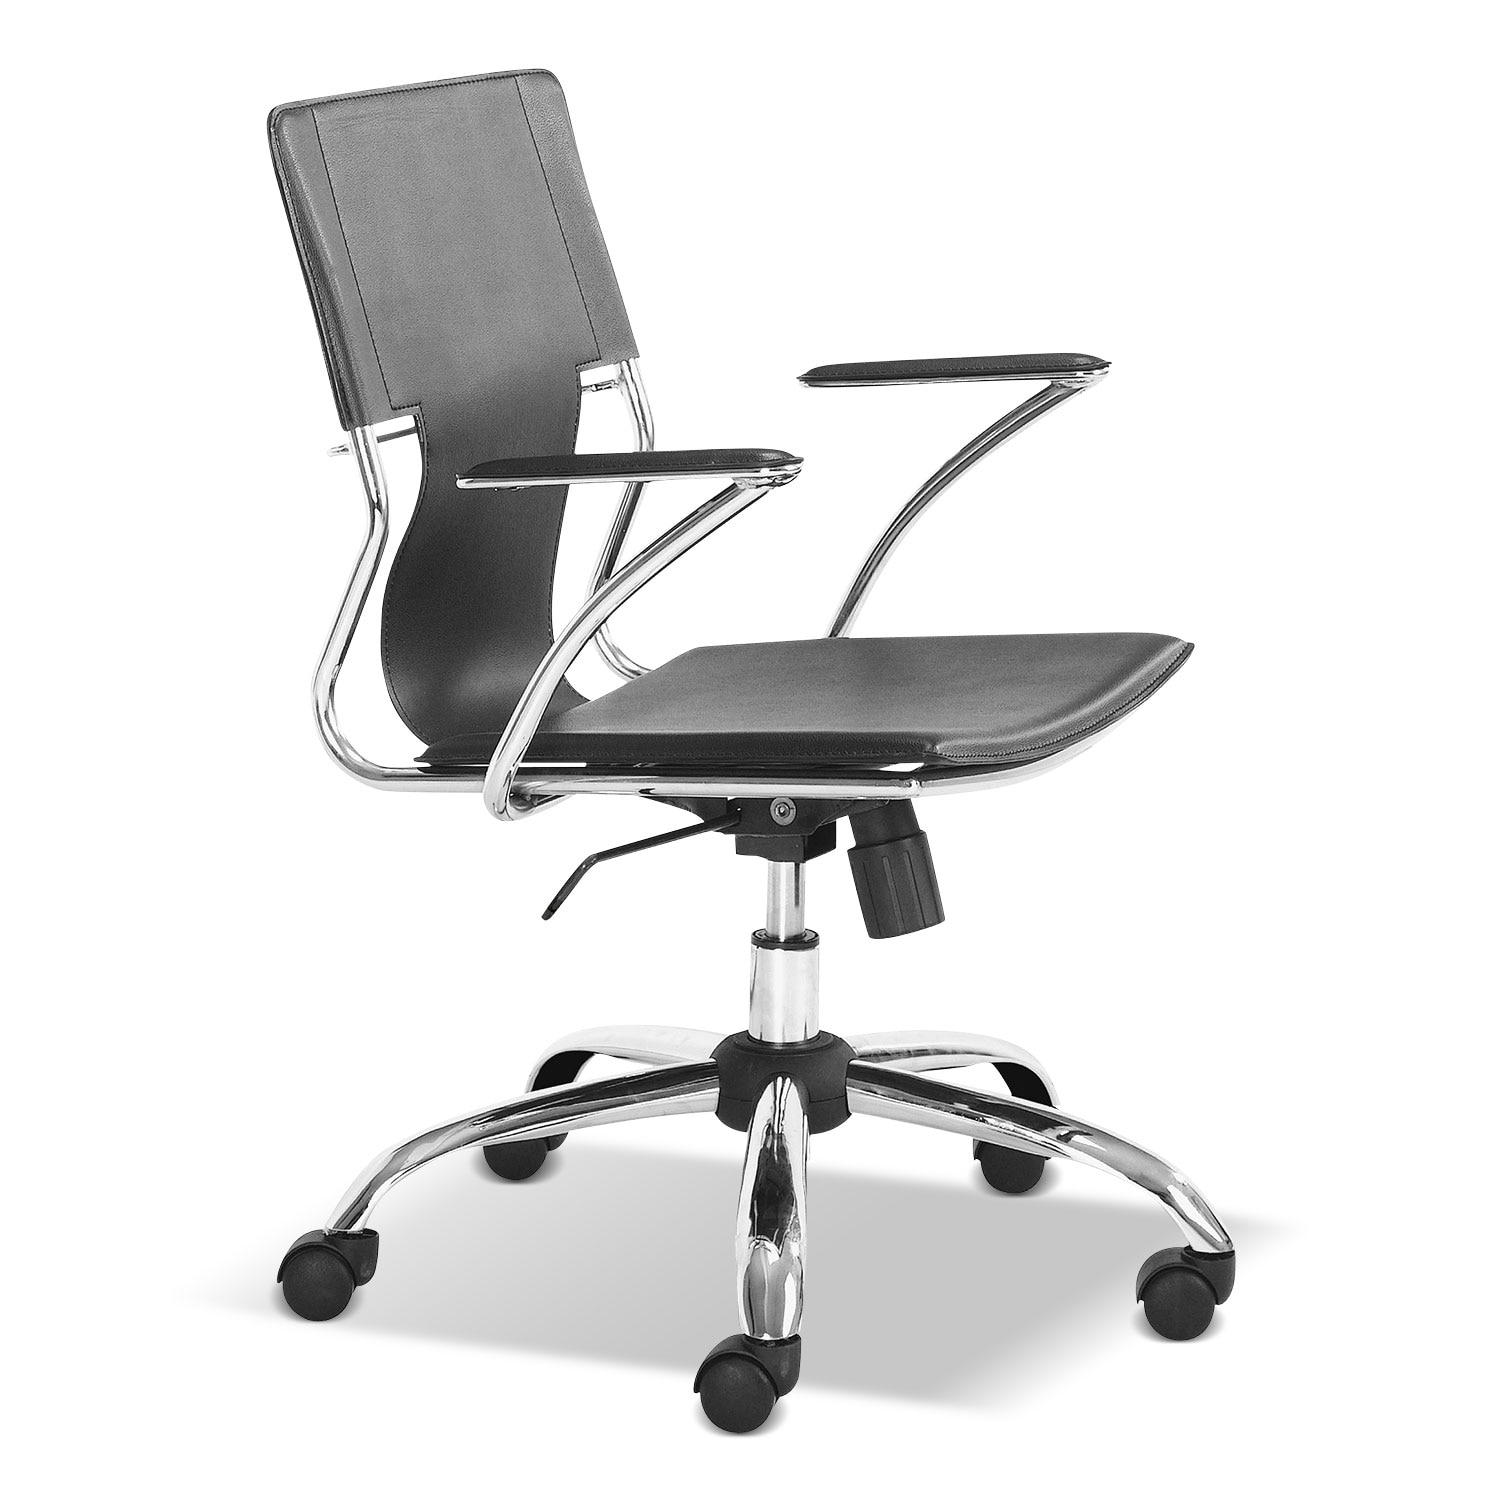 Home Office Furniture - Crowley Office Arm Chair - Black